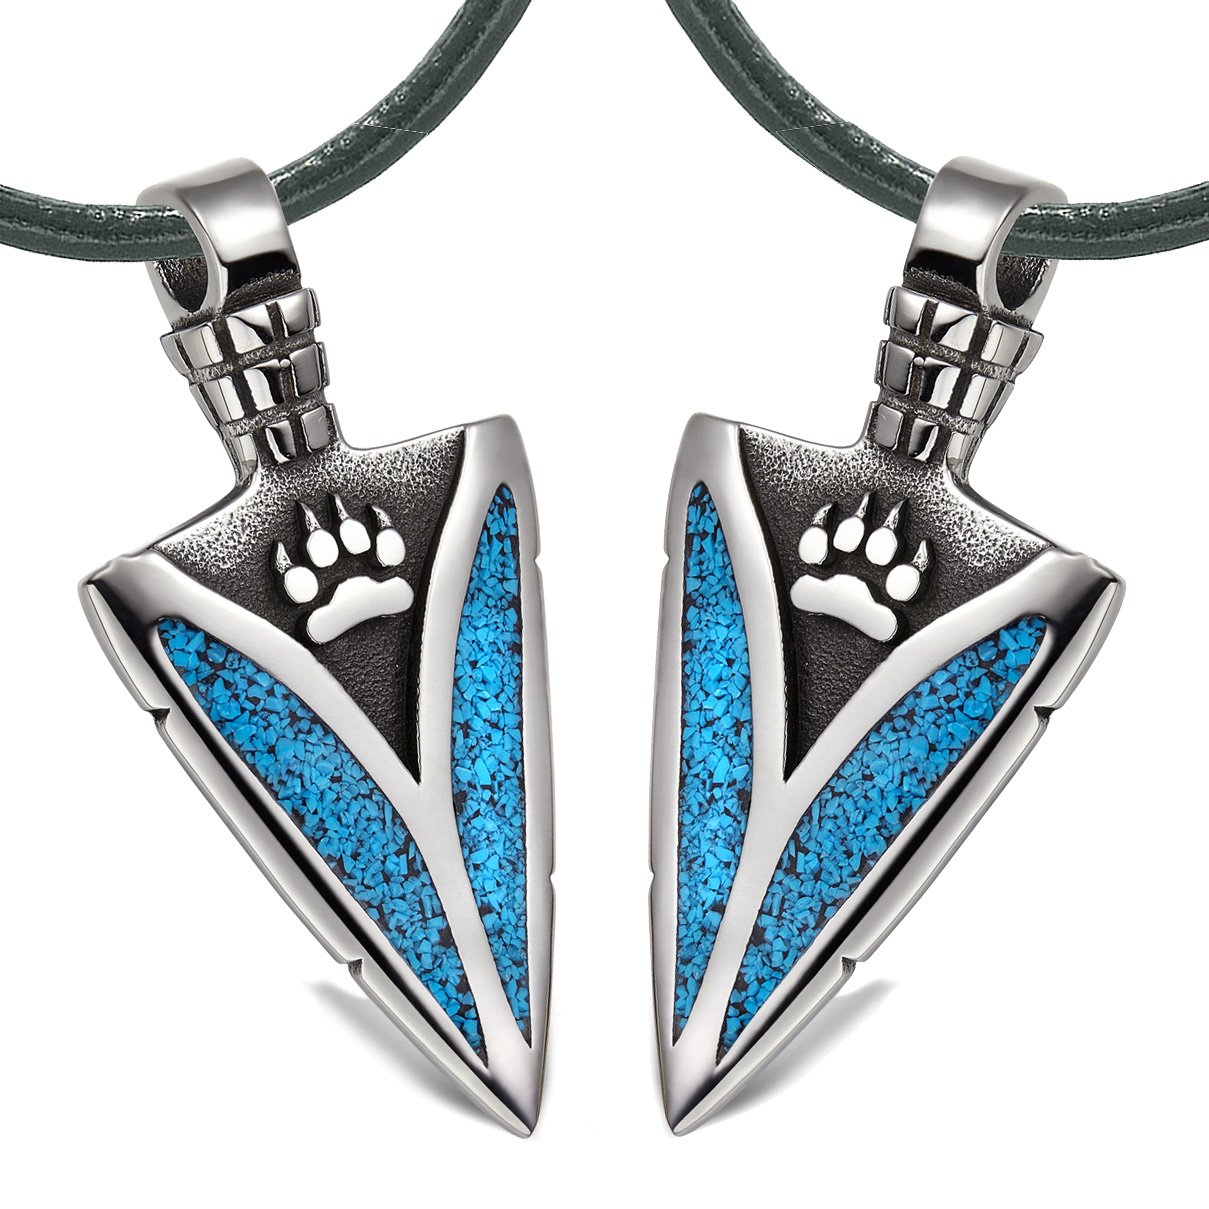 Arrowhead Wild Wolf Paw Love Couples or Best Friends Amulets Set Simulated Turquoise Leather Necklaces